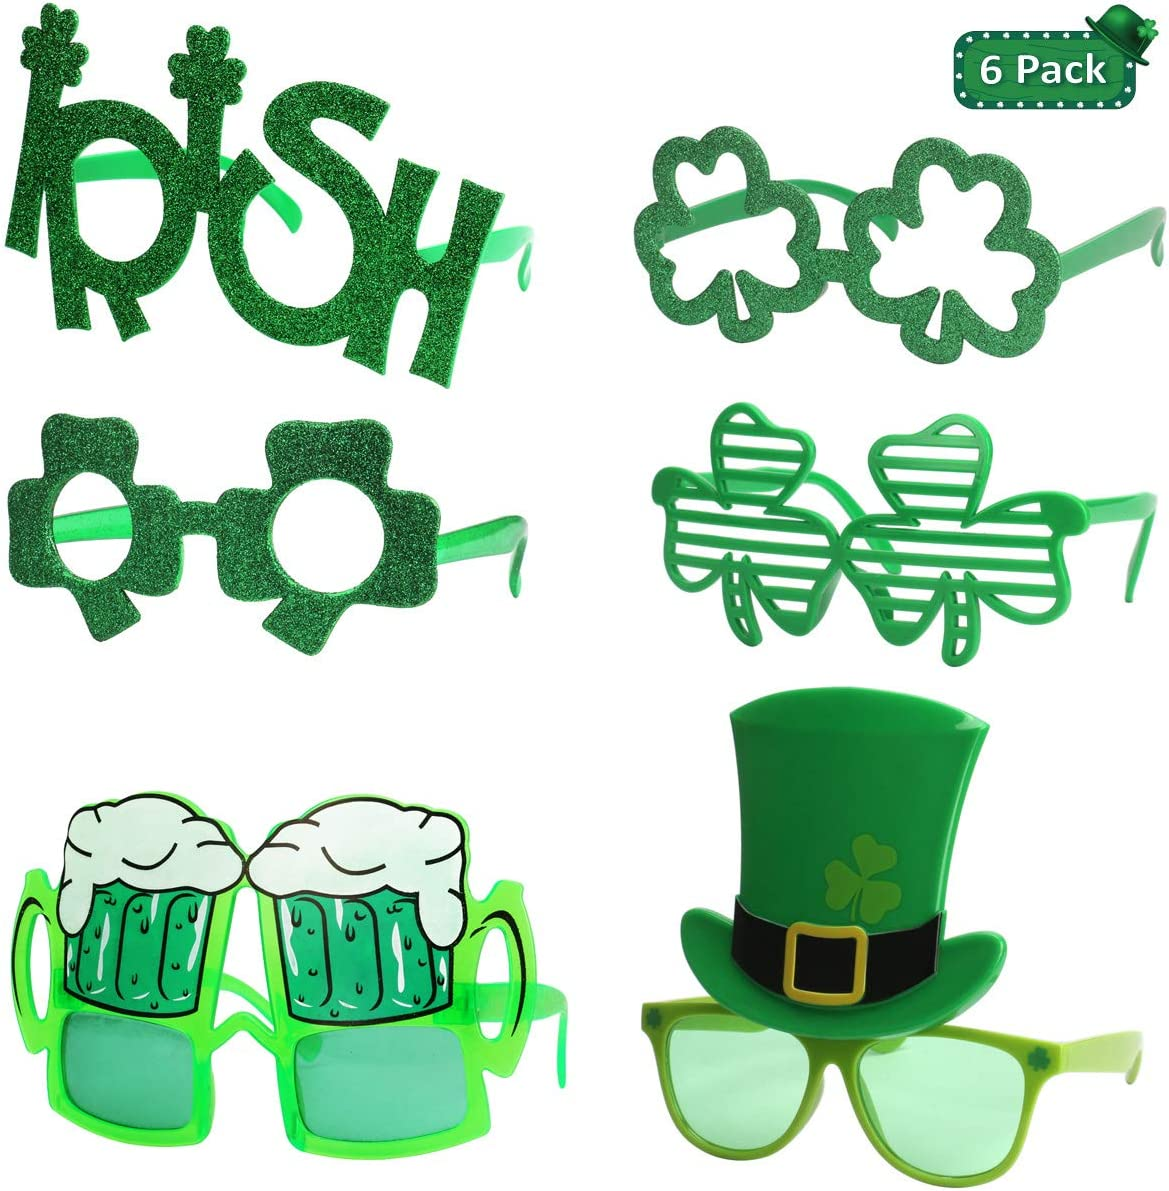 Ocean Line St Patrick S Day Glasses 6 Pack Irish Shamrock Leaves Costume Sunglasses Green Clover Evewear For Kids And Adults Toys Games Amazon Com